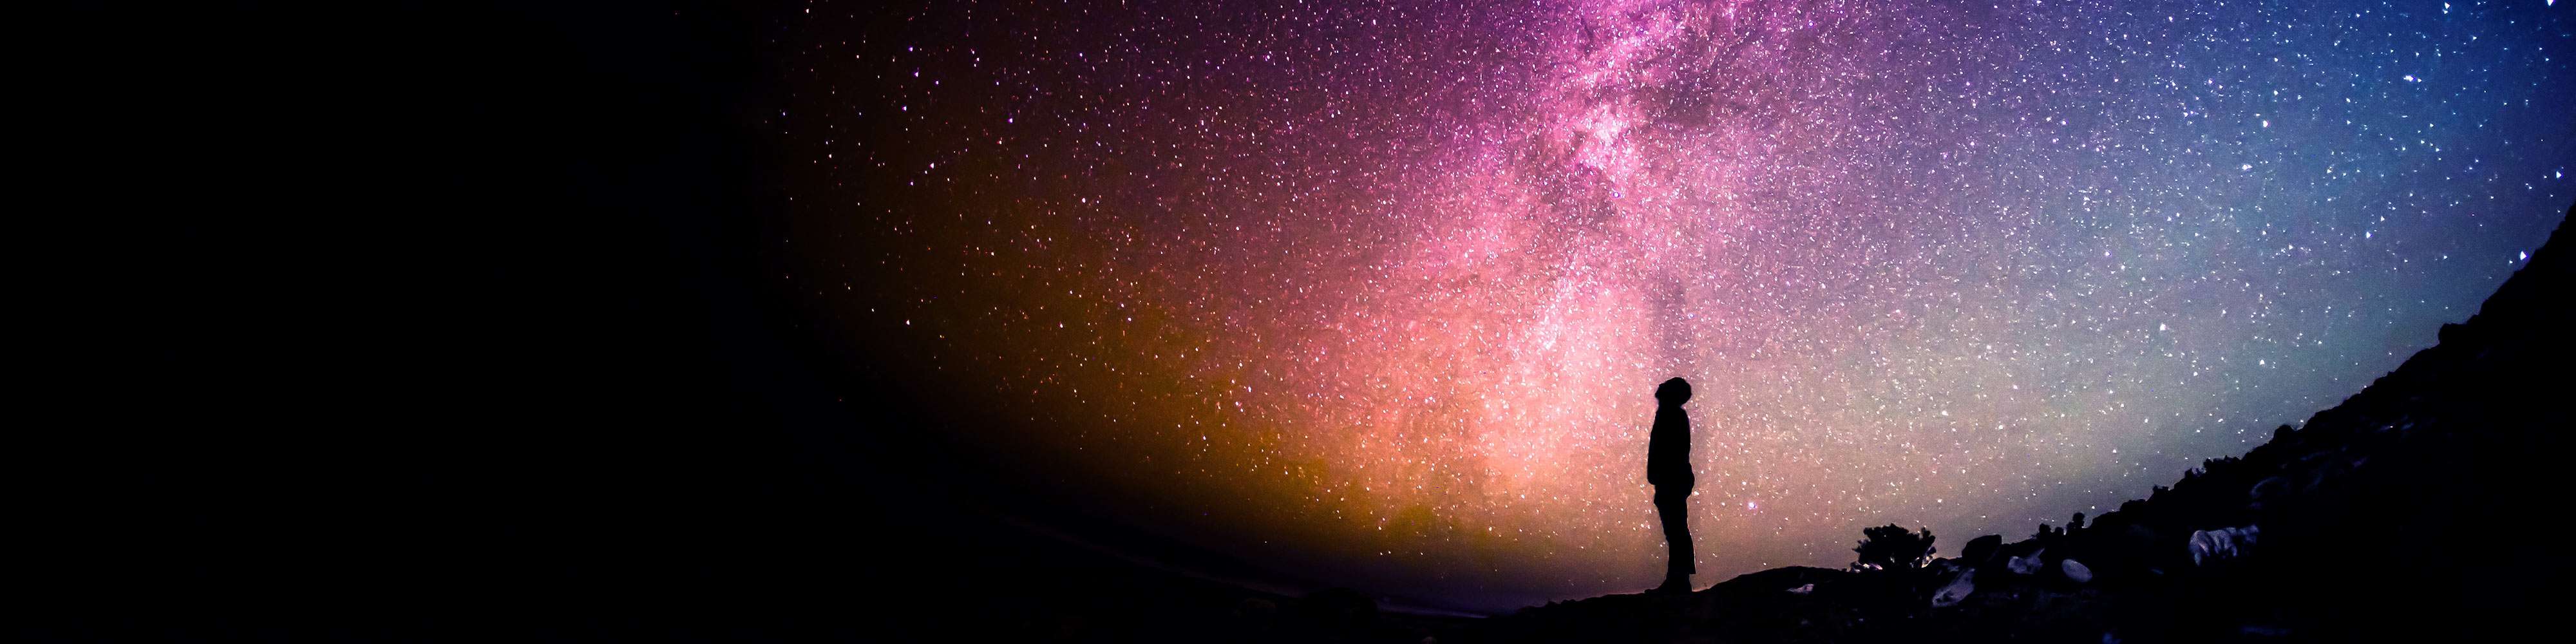 Starry starry night: looking up at the Milky Way - Curious